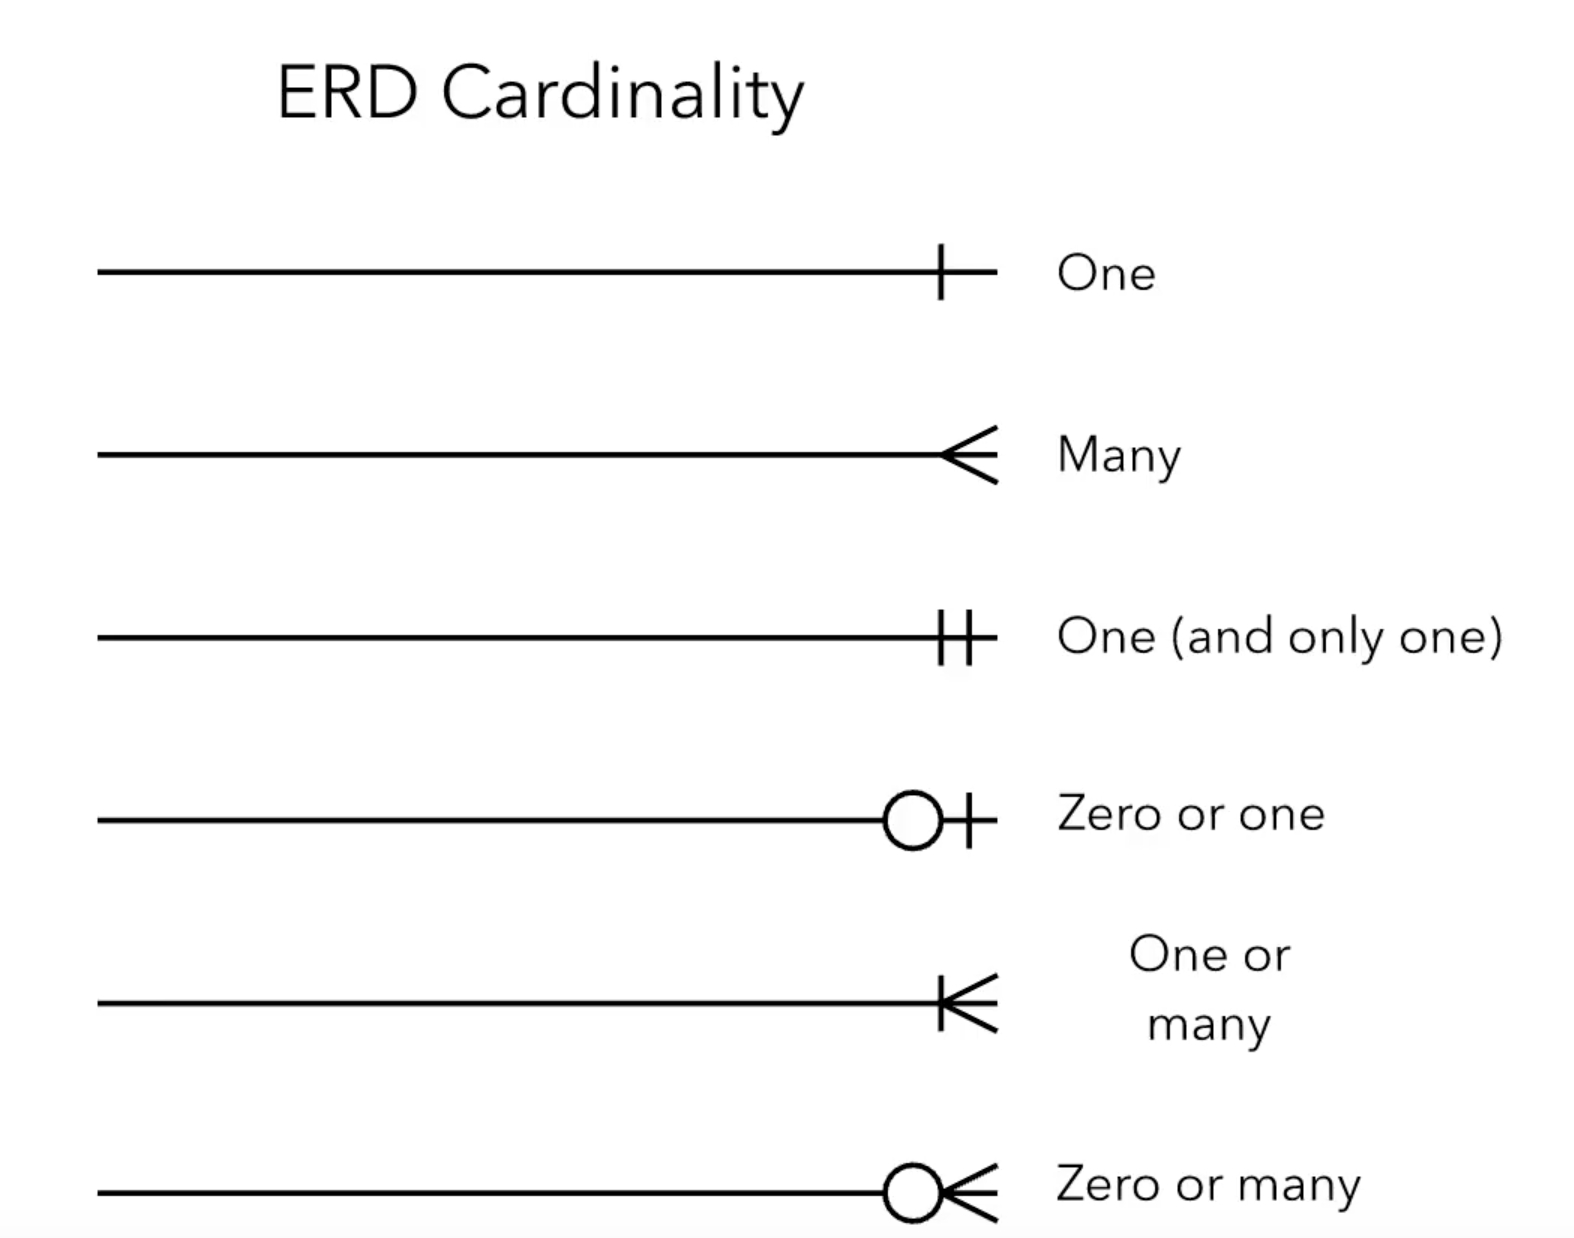 Er Diagram - Are The Relations And Cardinalities Correct pertaining to Er Diagram With Cardinality